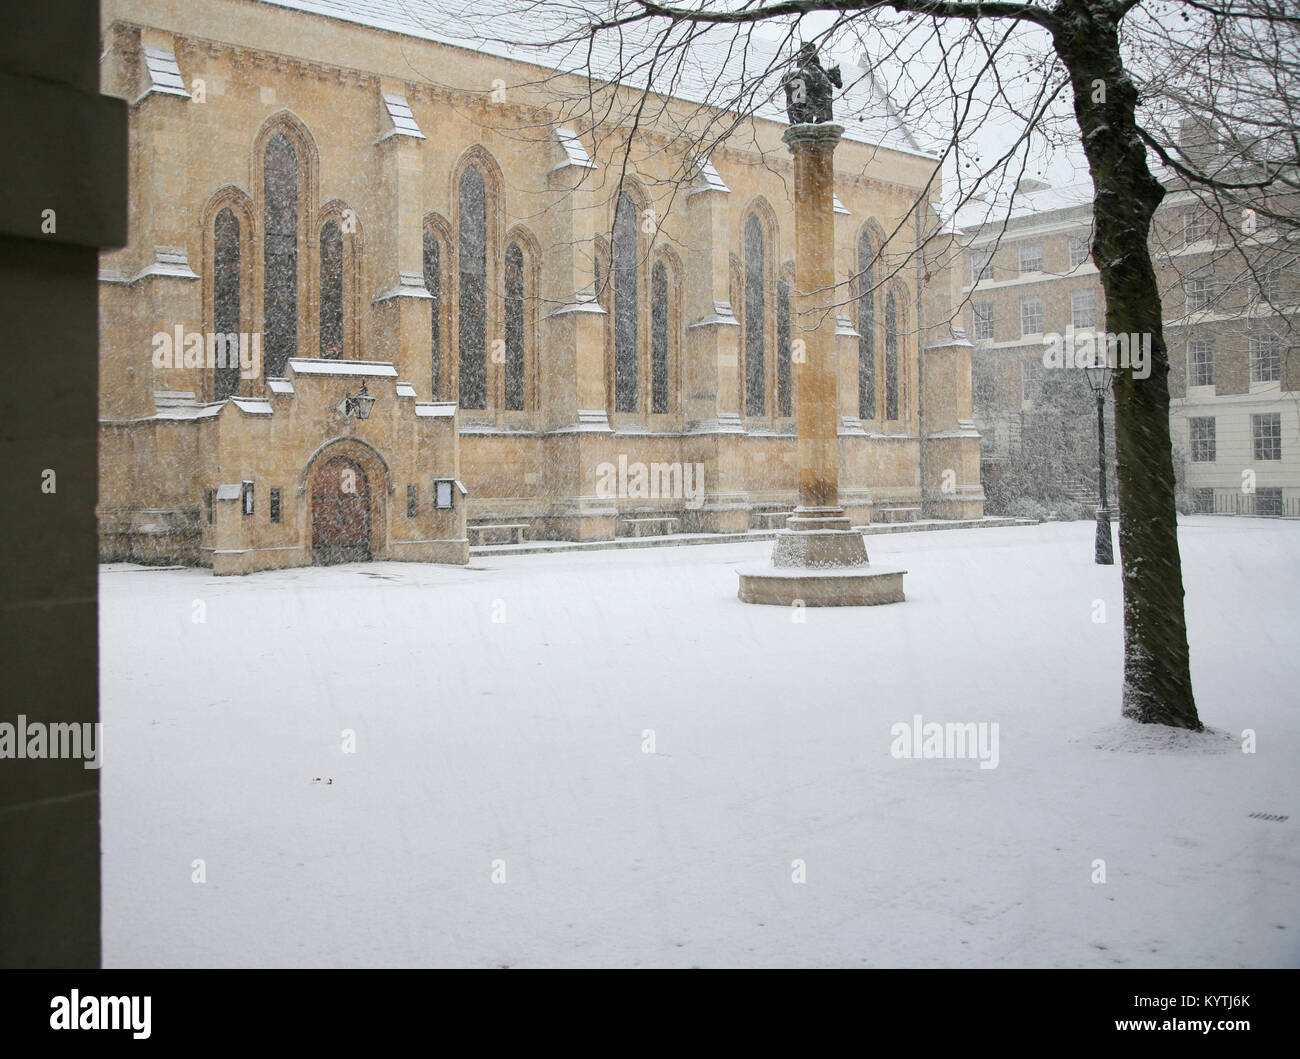 Temple Church in the snow, Inner Temple London - Stock Image